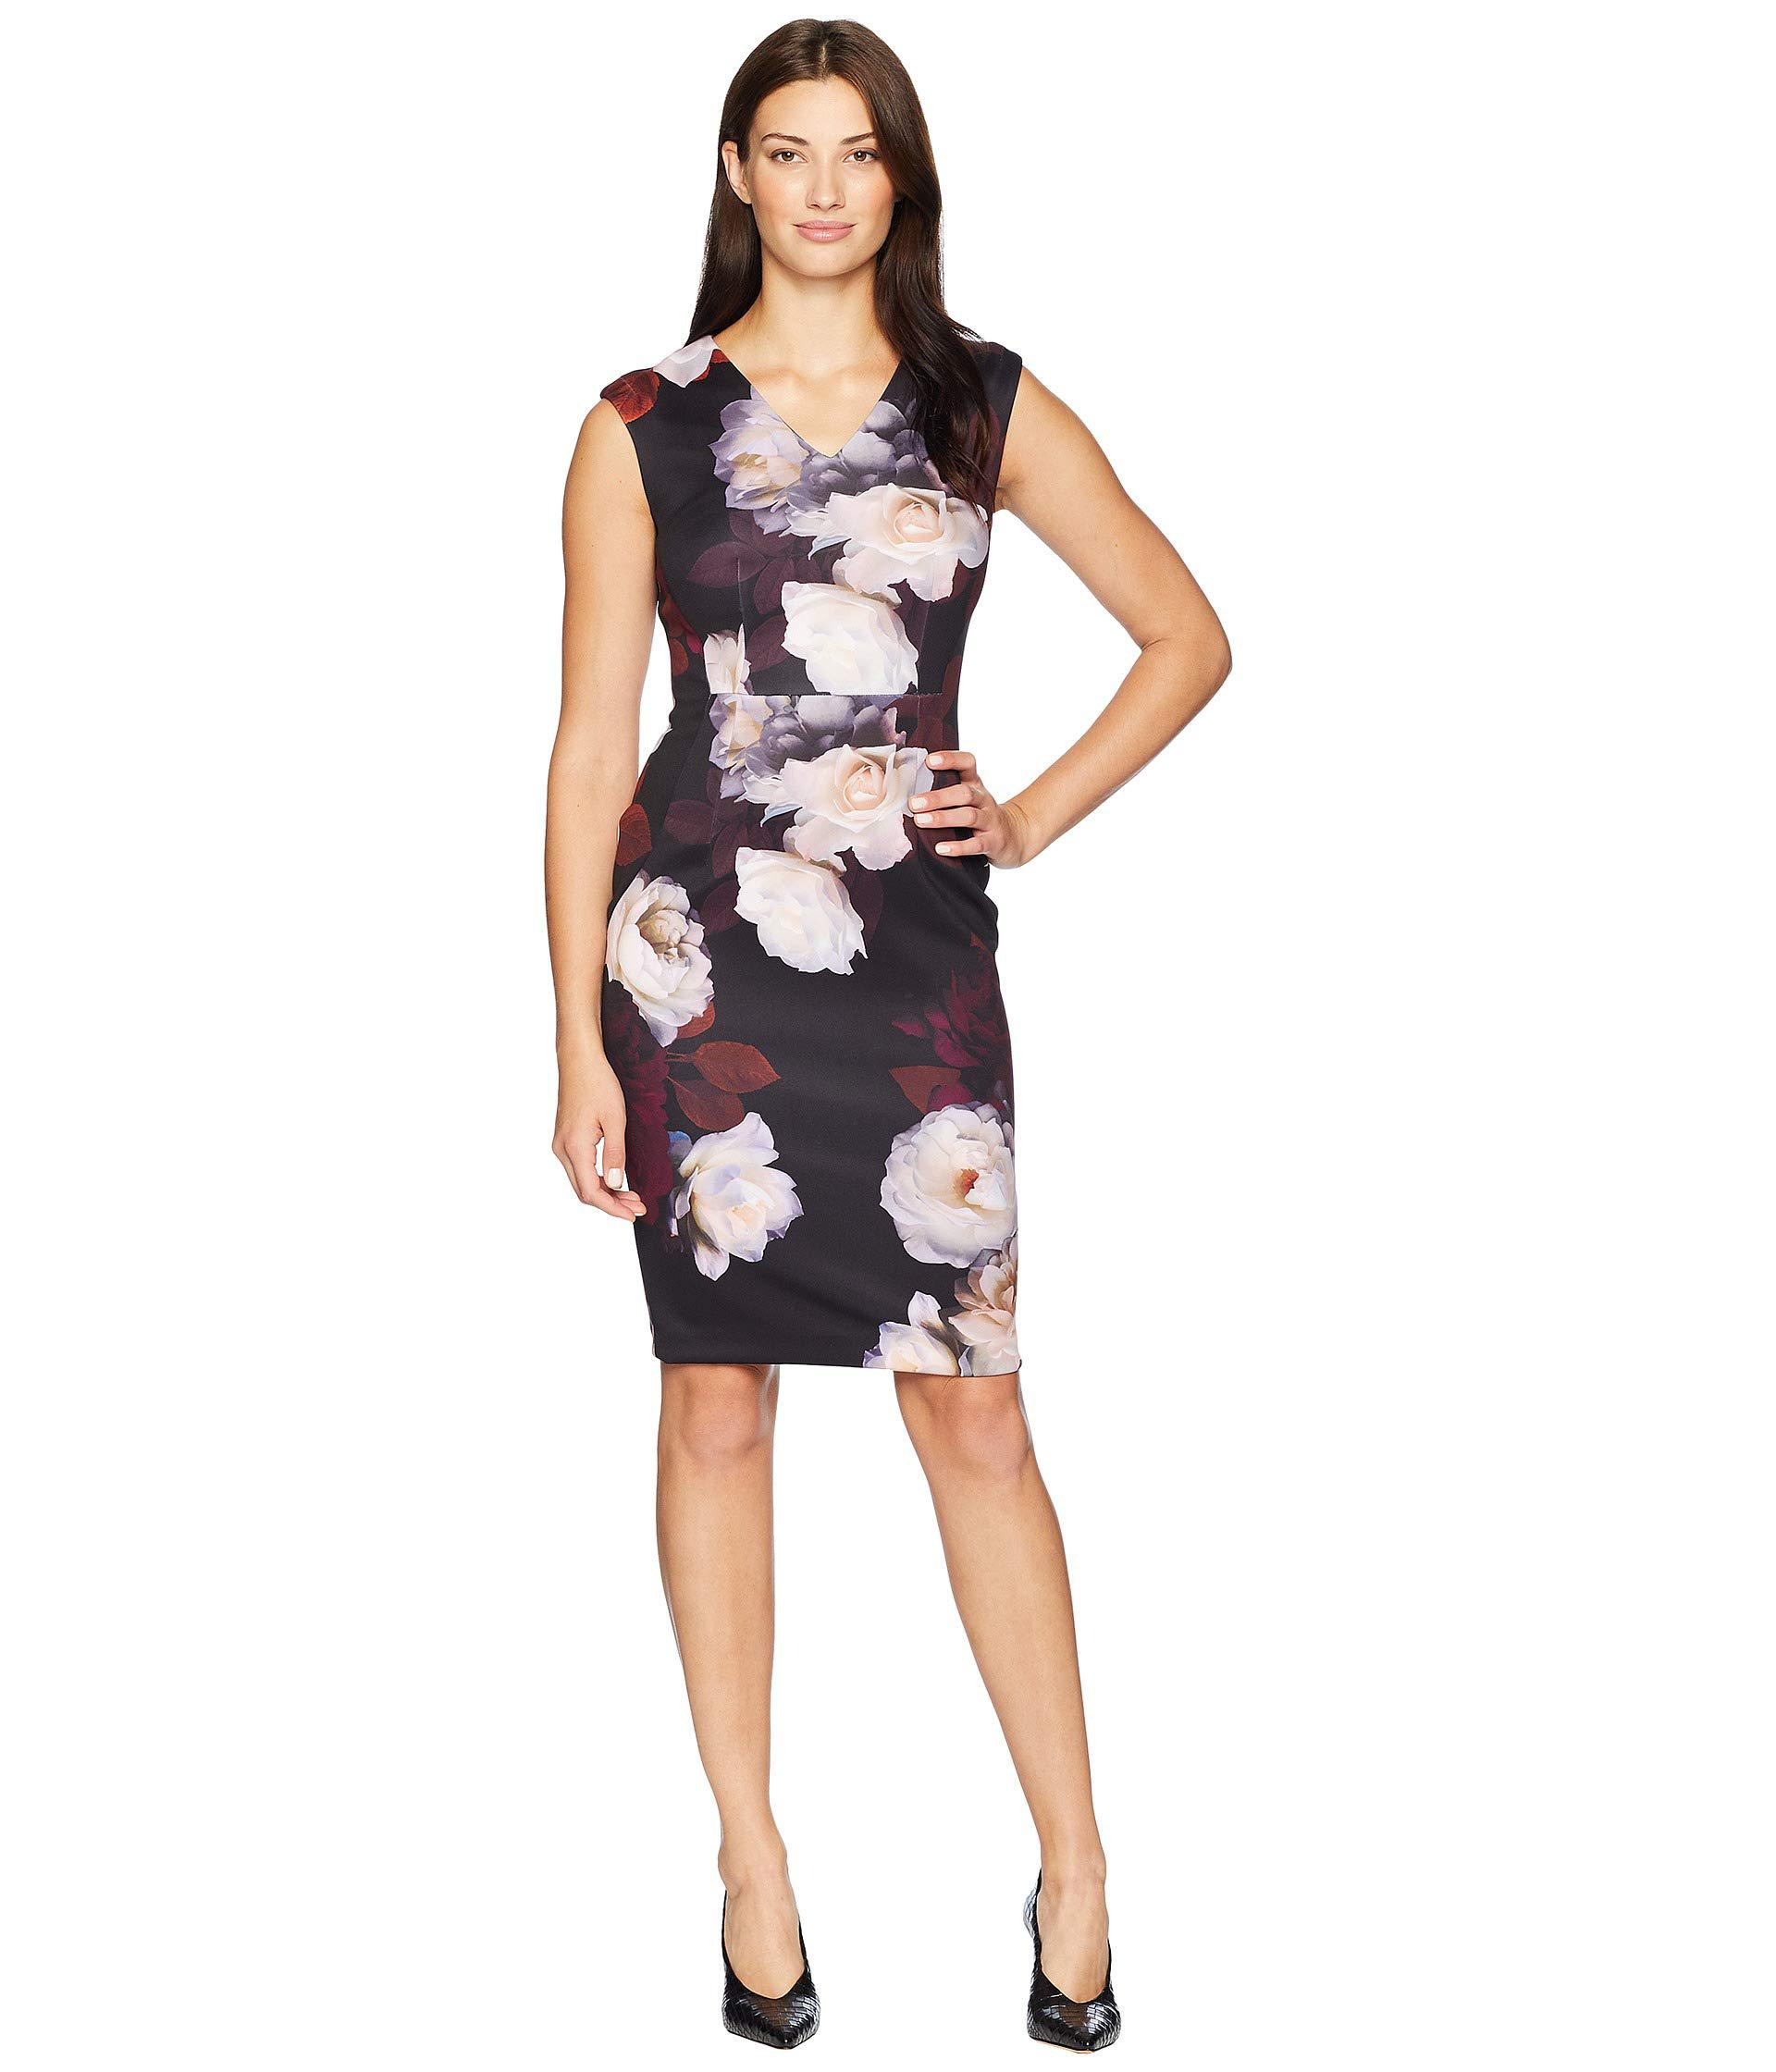 25a74f7438aff Calvin Klein. Women s Floral V-neck Sheath Dress Cd8m38av